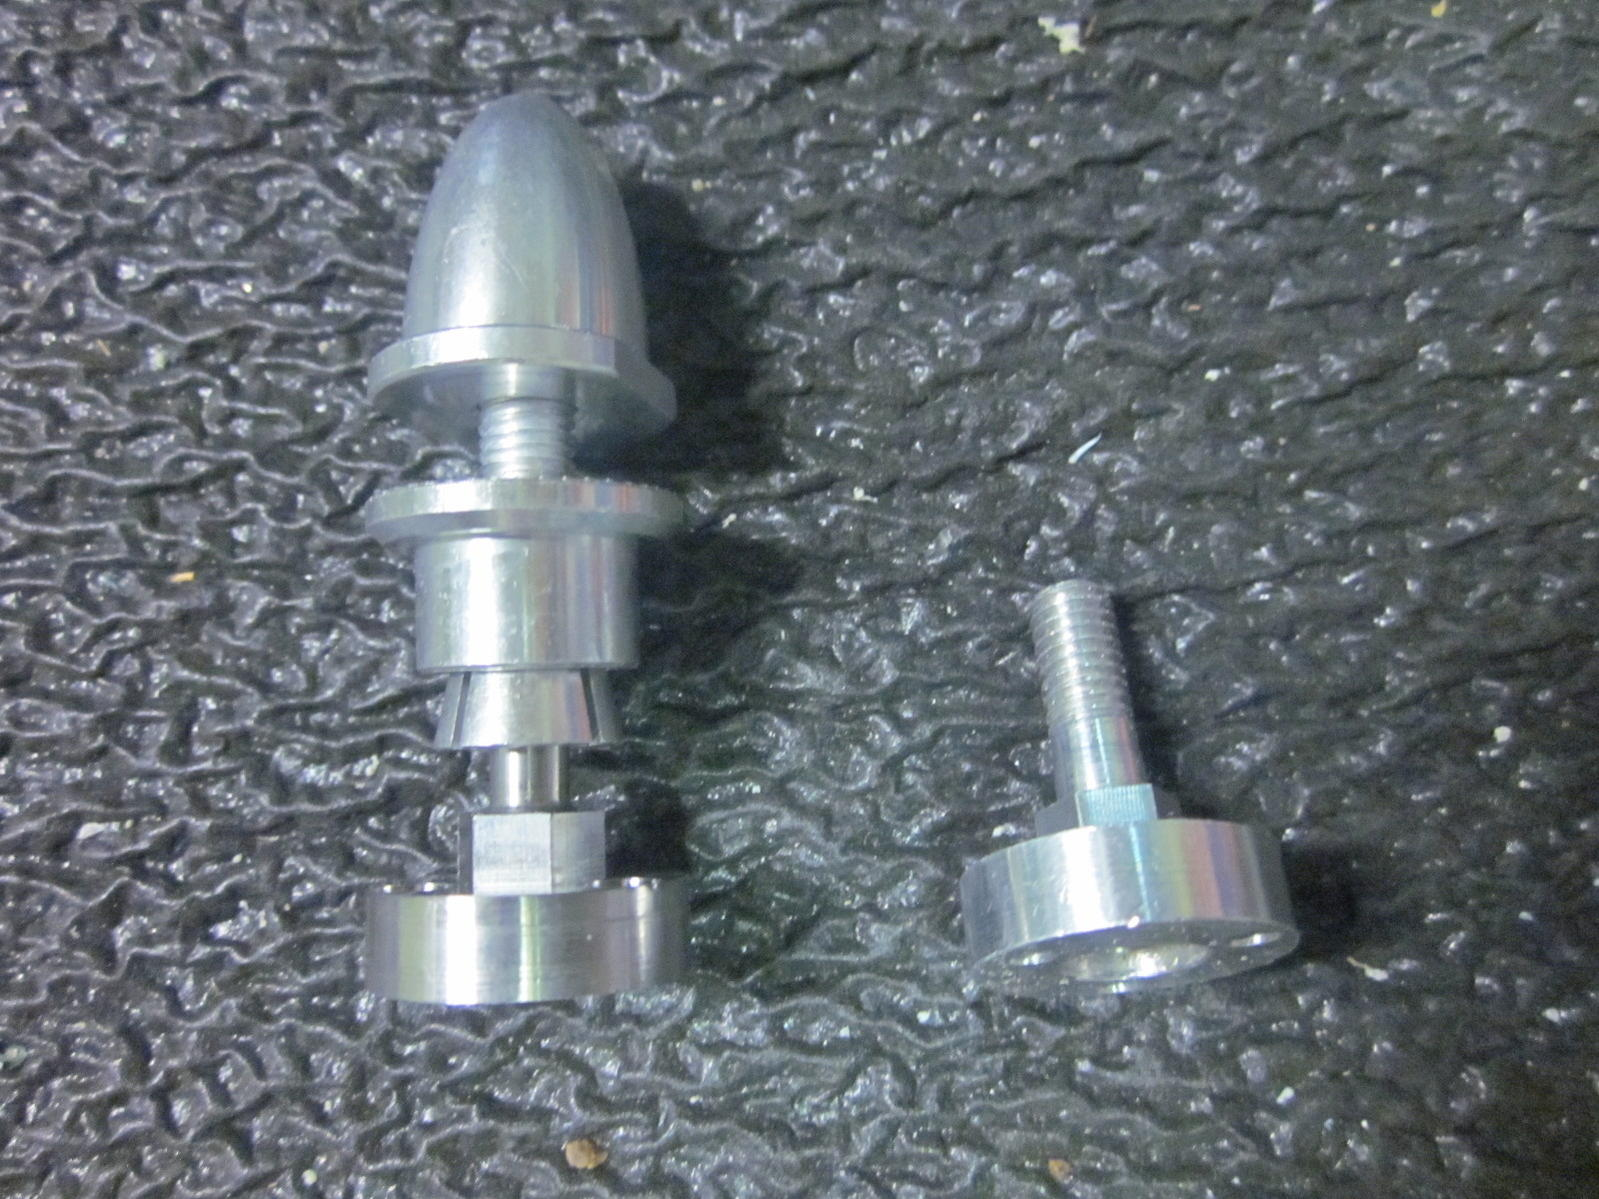 Name: Prop adapter 2012-08-04 002.jpg